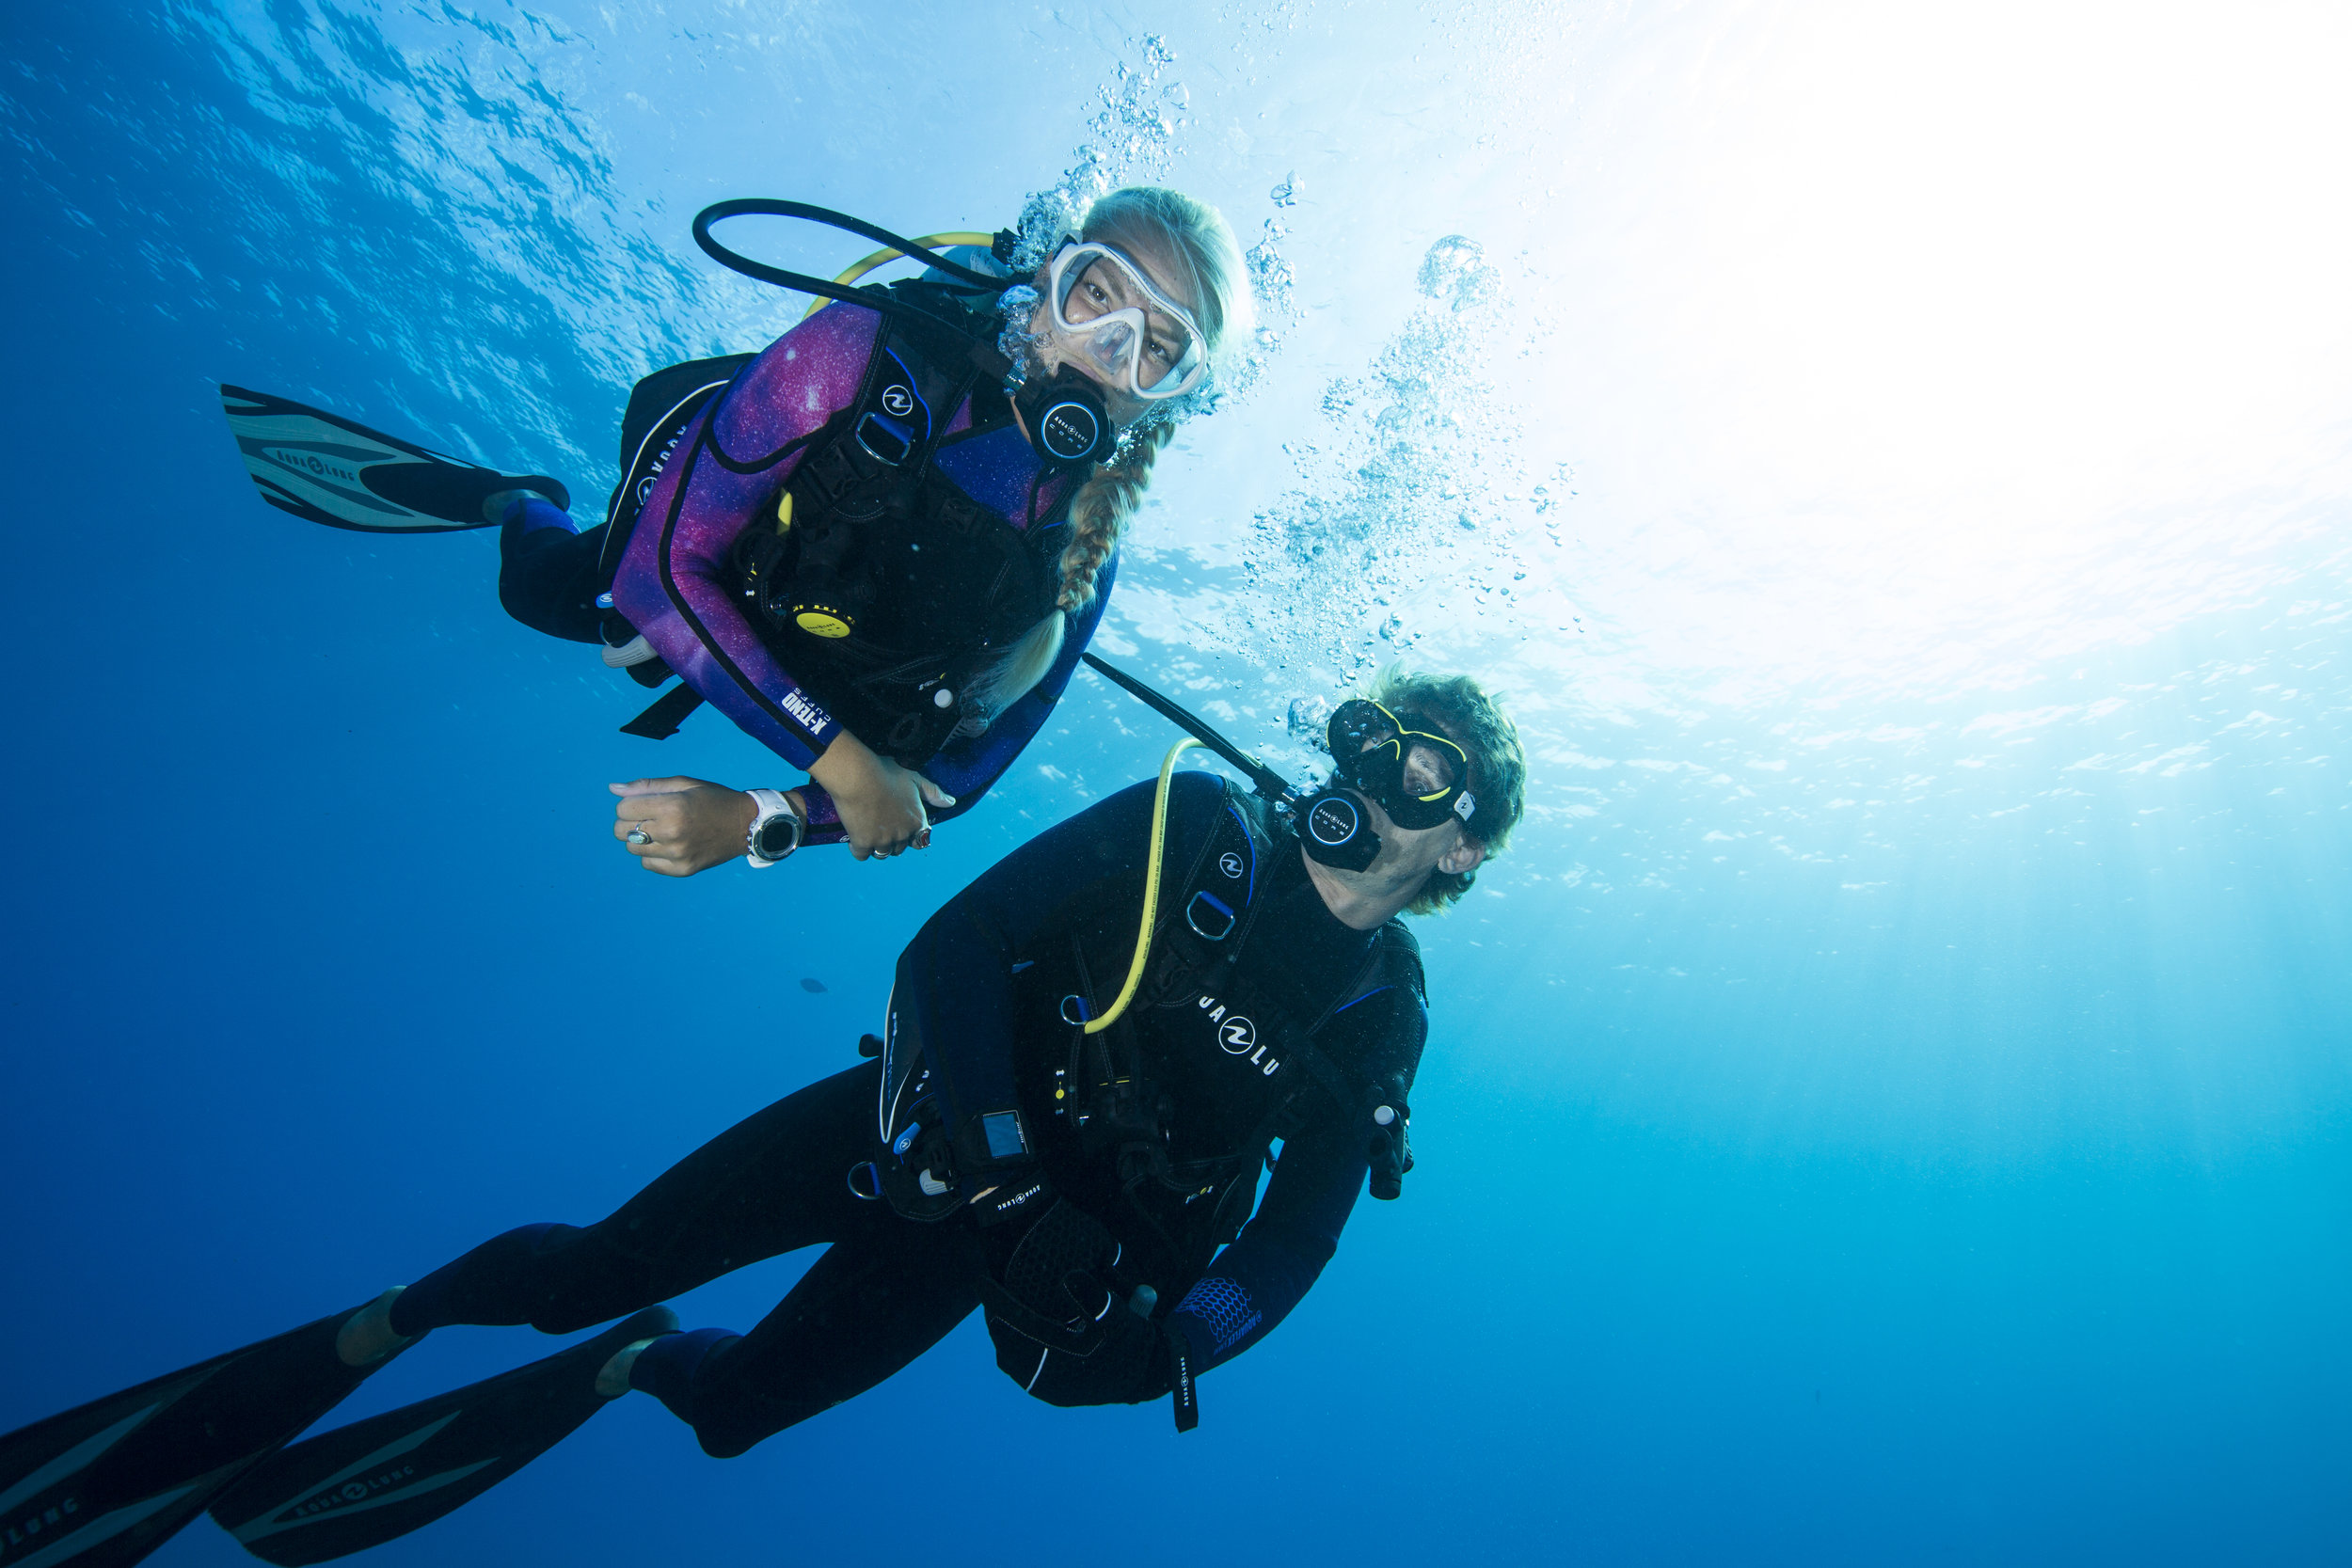 Have Any Questions? - Contact rowand's Reef today to find out more about Discover Scuba Diving Experiences!